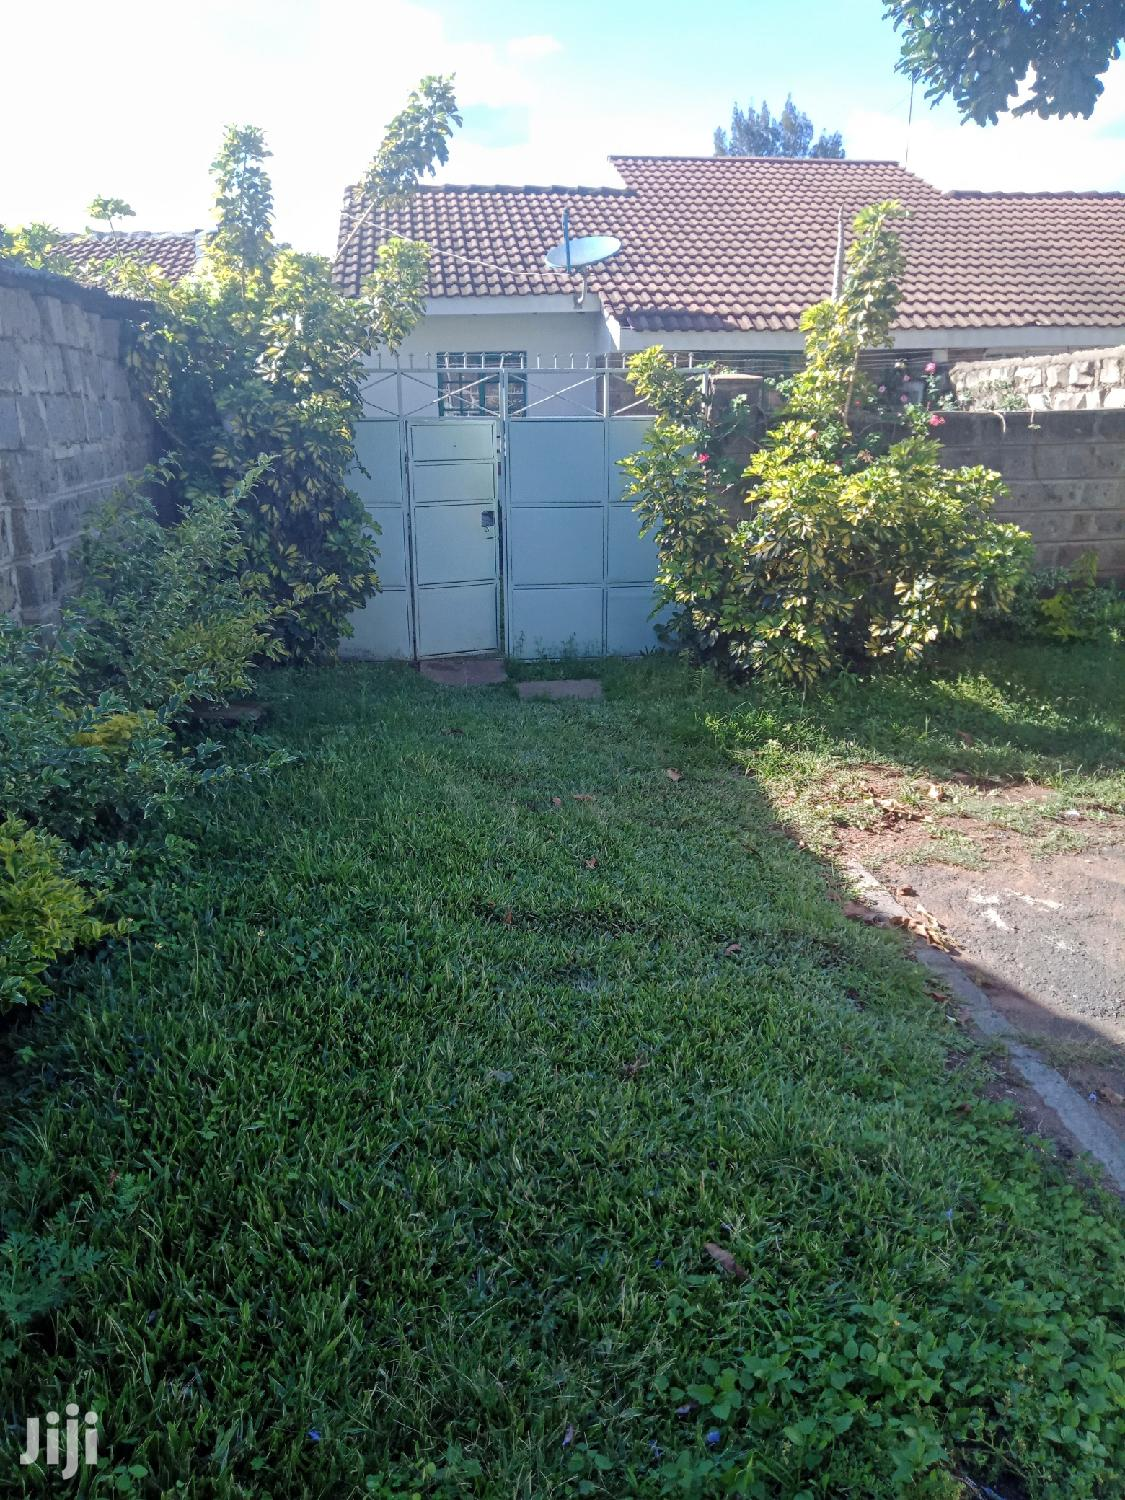 Home Stay/ Rooms to Let   Houses & Apartments For Rent for sale in Imara Daima, Nairobi, Kenya